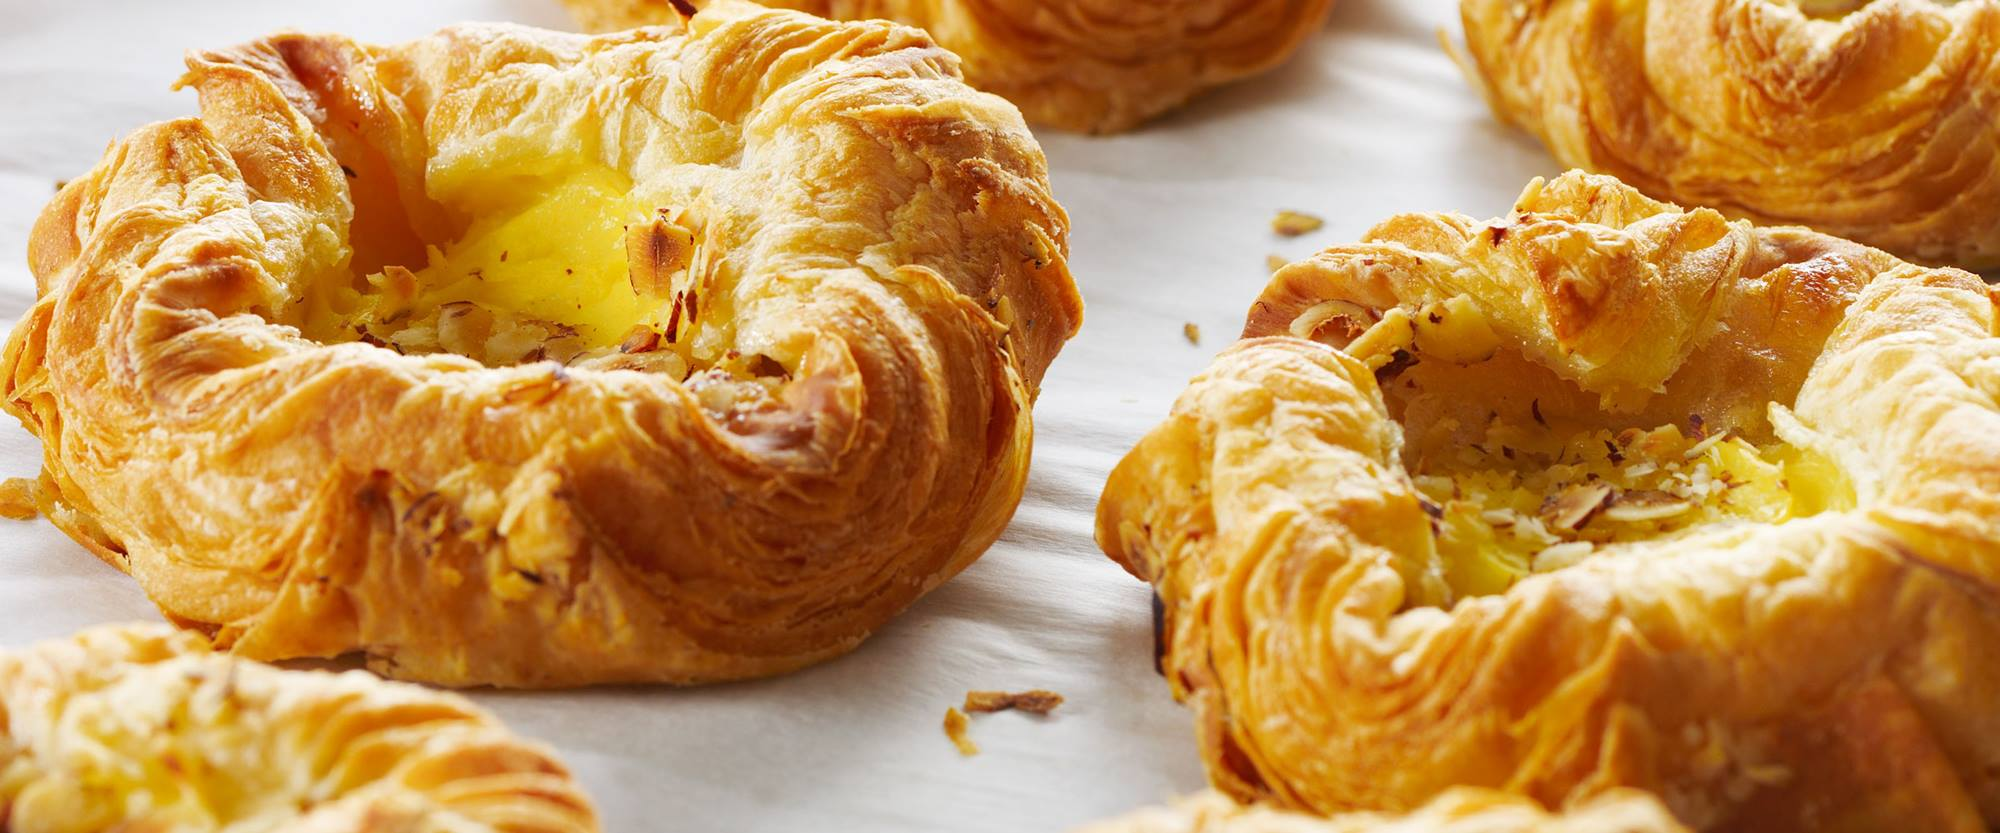 Nutrilac can enhance sweetness and improved lamination in Danish pastery